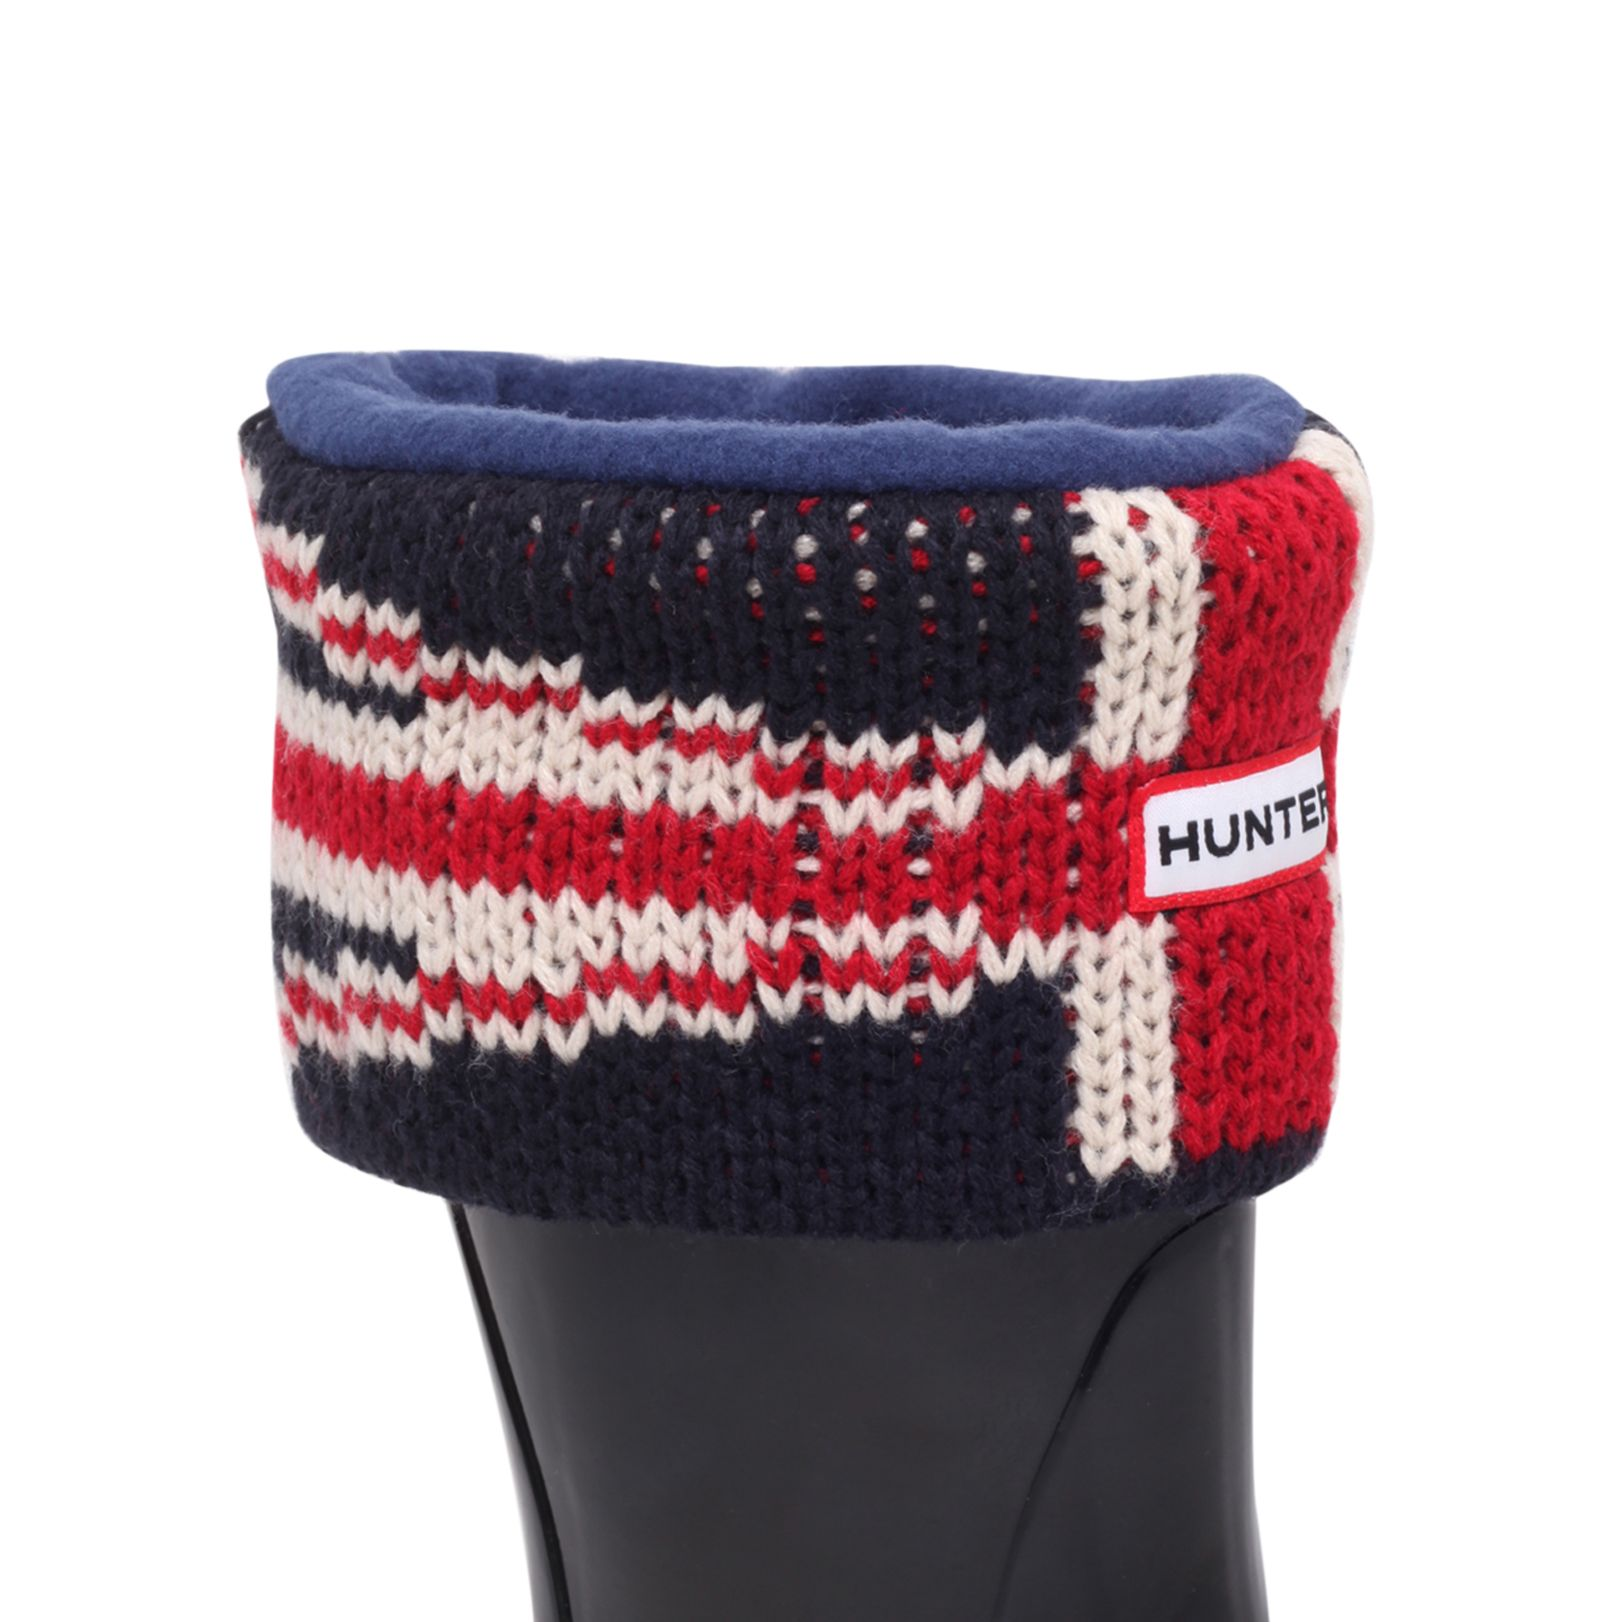 Original brit cuff boots socks